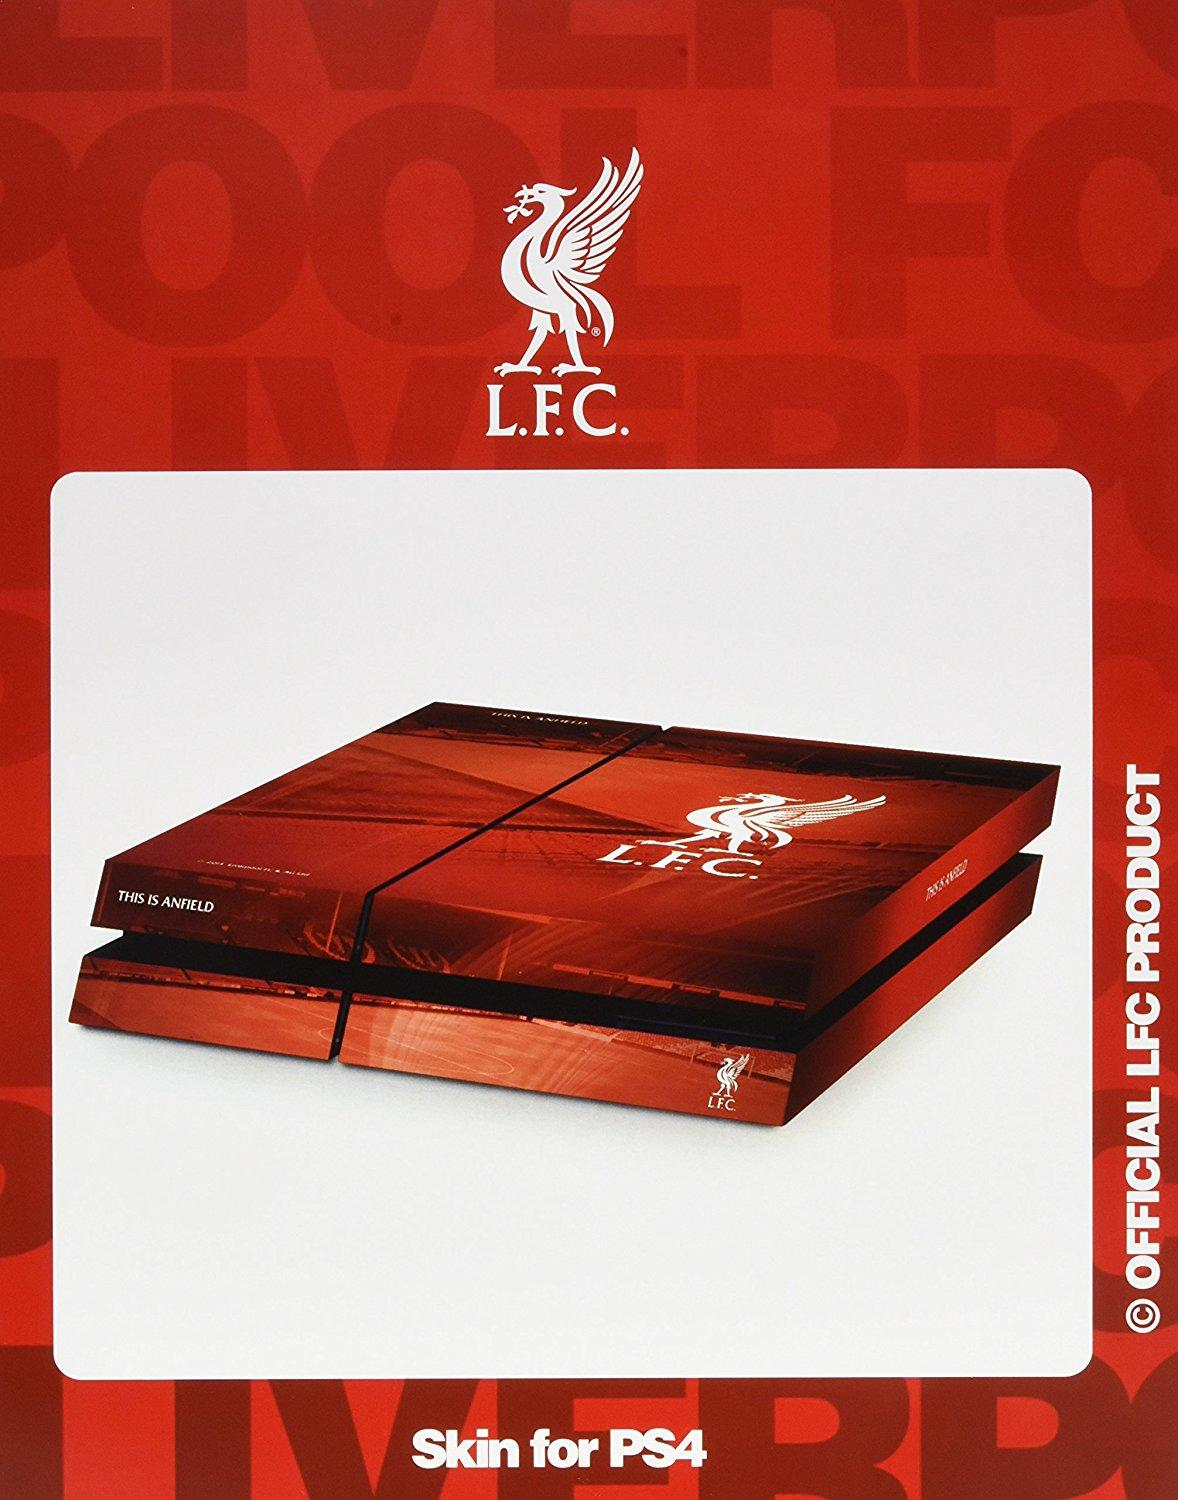 inToro Liverpool FC Skin for PlayStation 4 Console